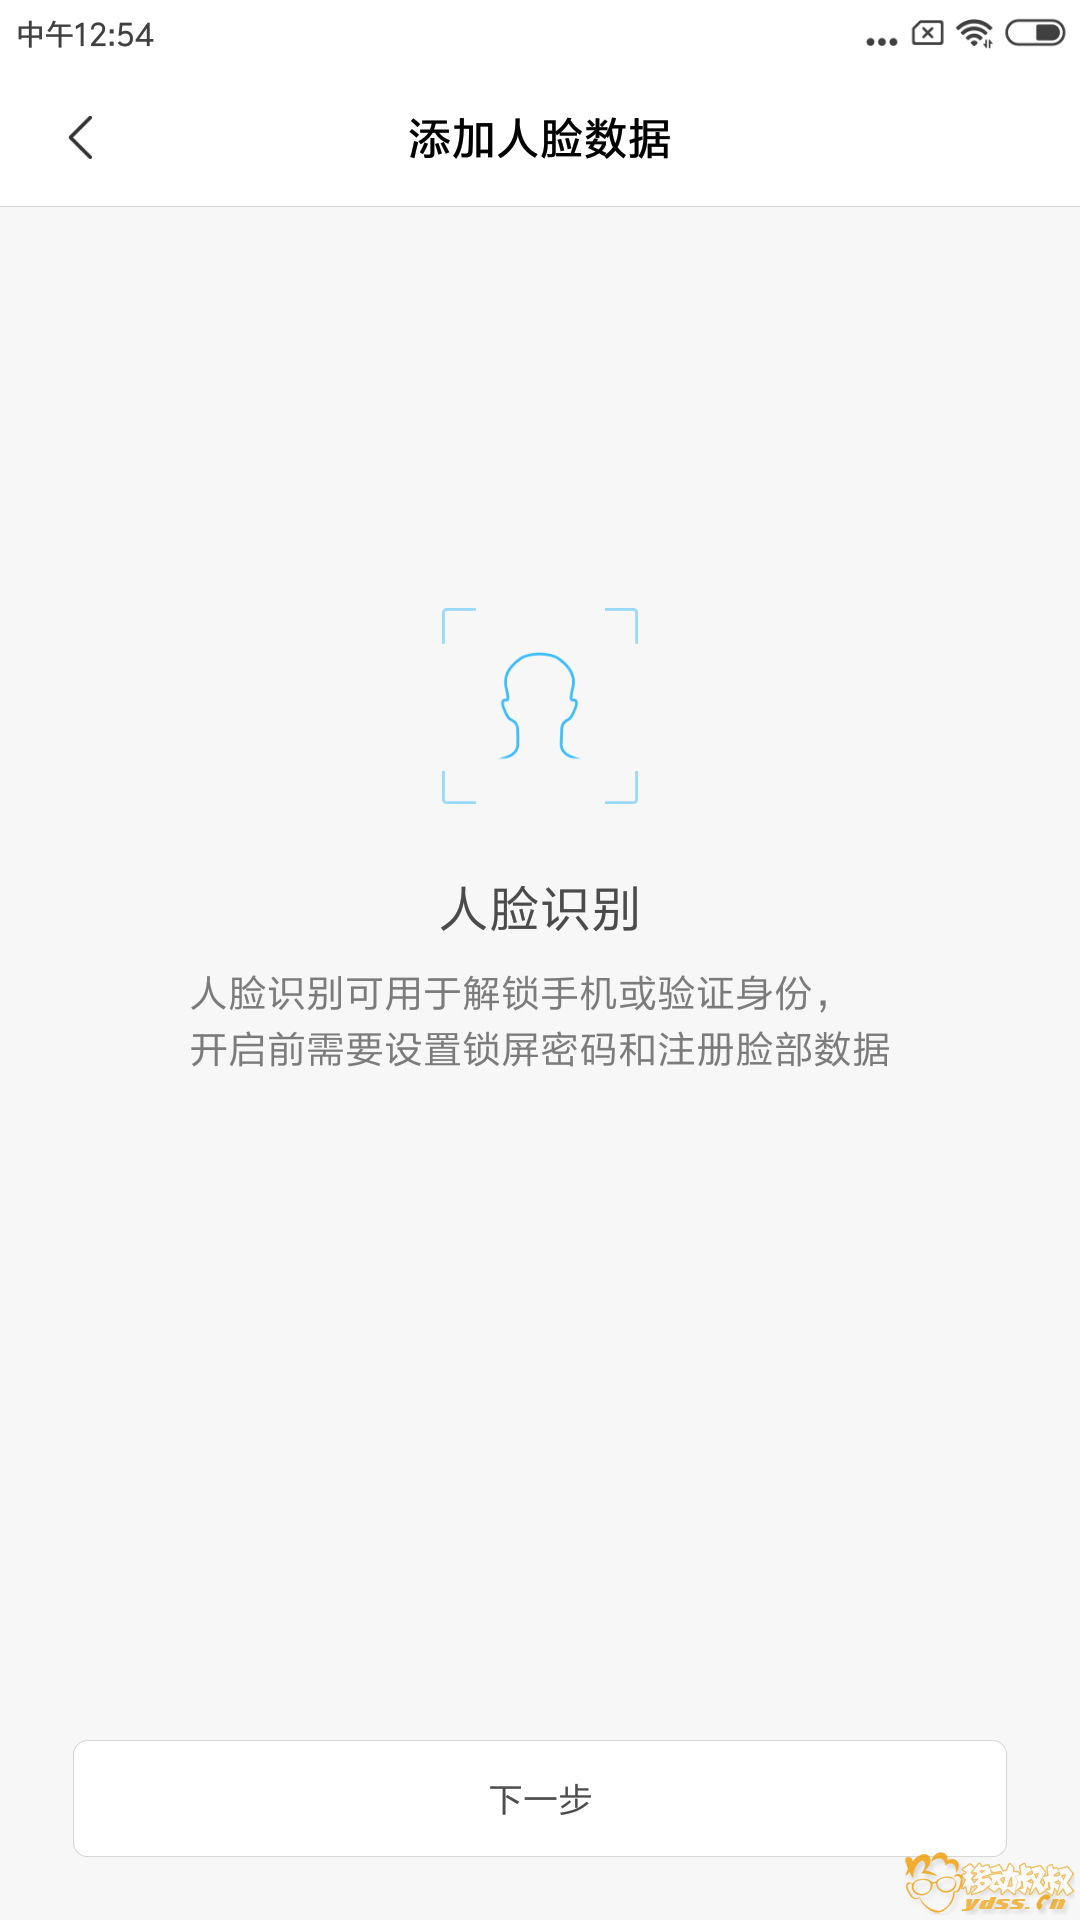 Screenshot_2018-11-24-12-54-27-821_com.android.systemui.png